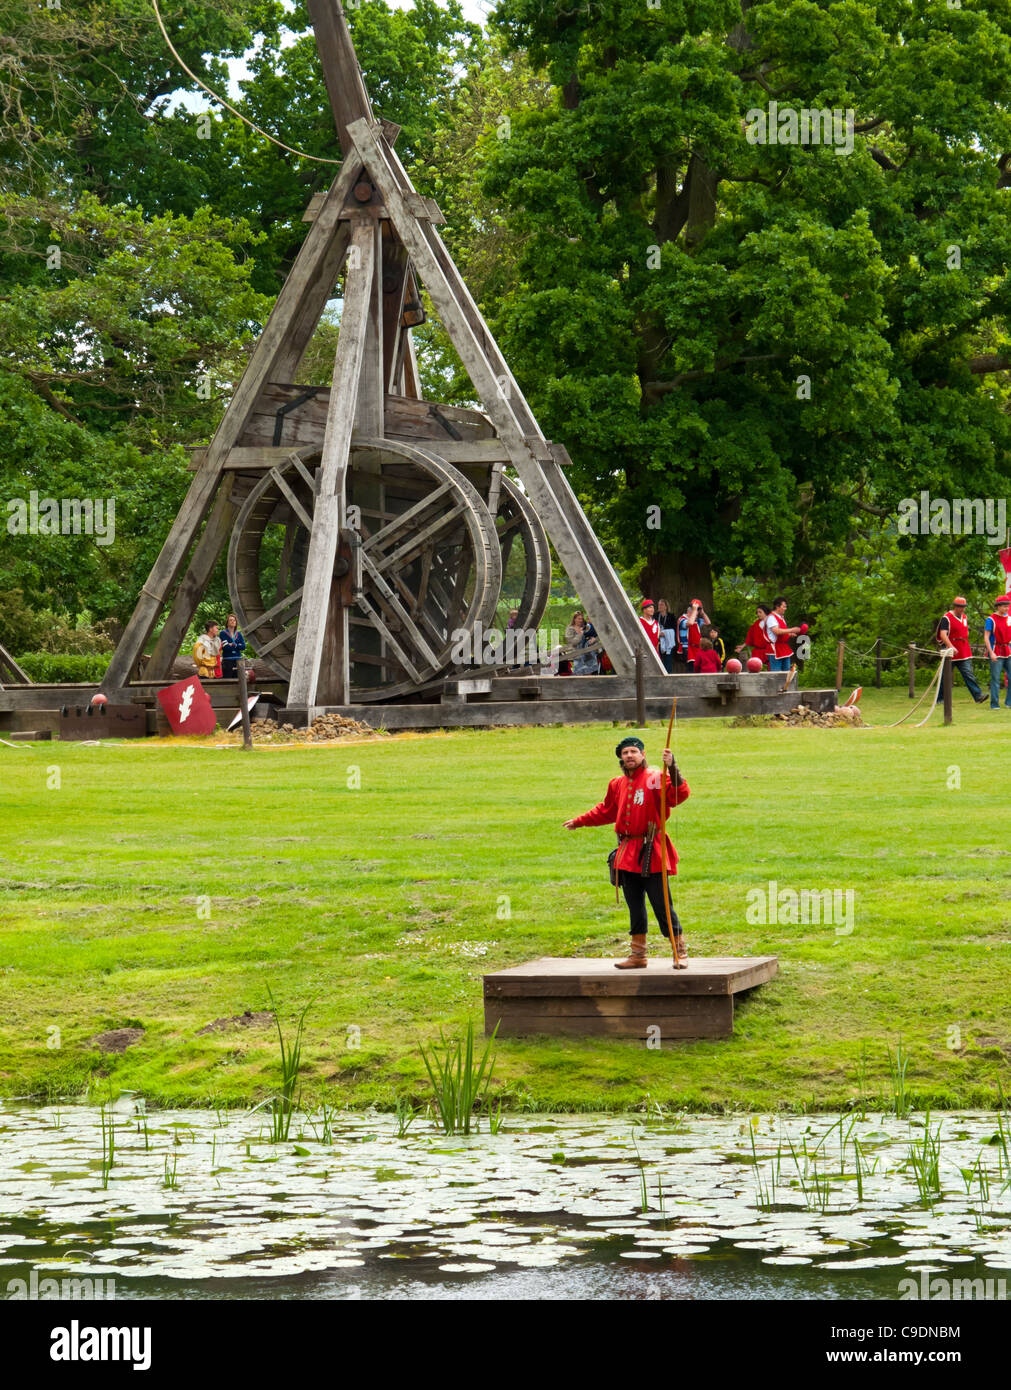 Catapult Trebuchet Stock Photos Images Diagram Of Our Warwick Castle The Largest In World Which Is Operated Twice Daily To Visitors